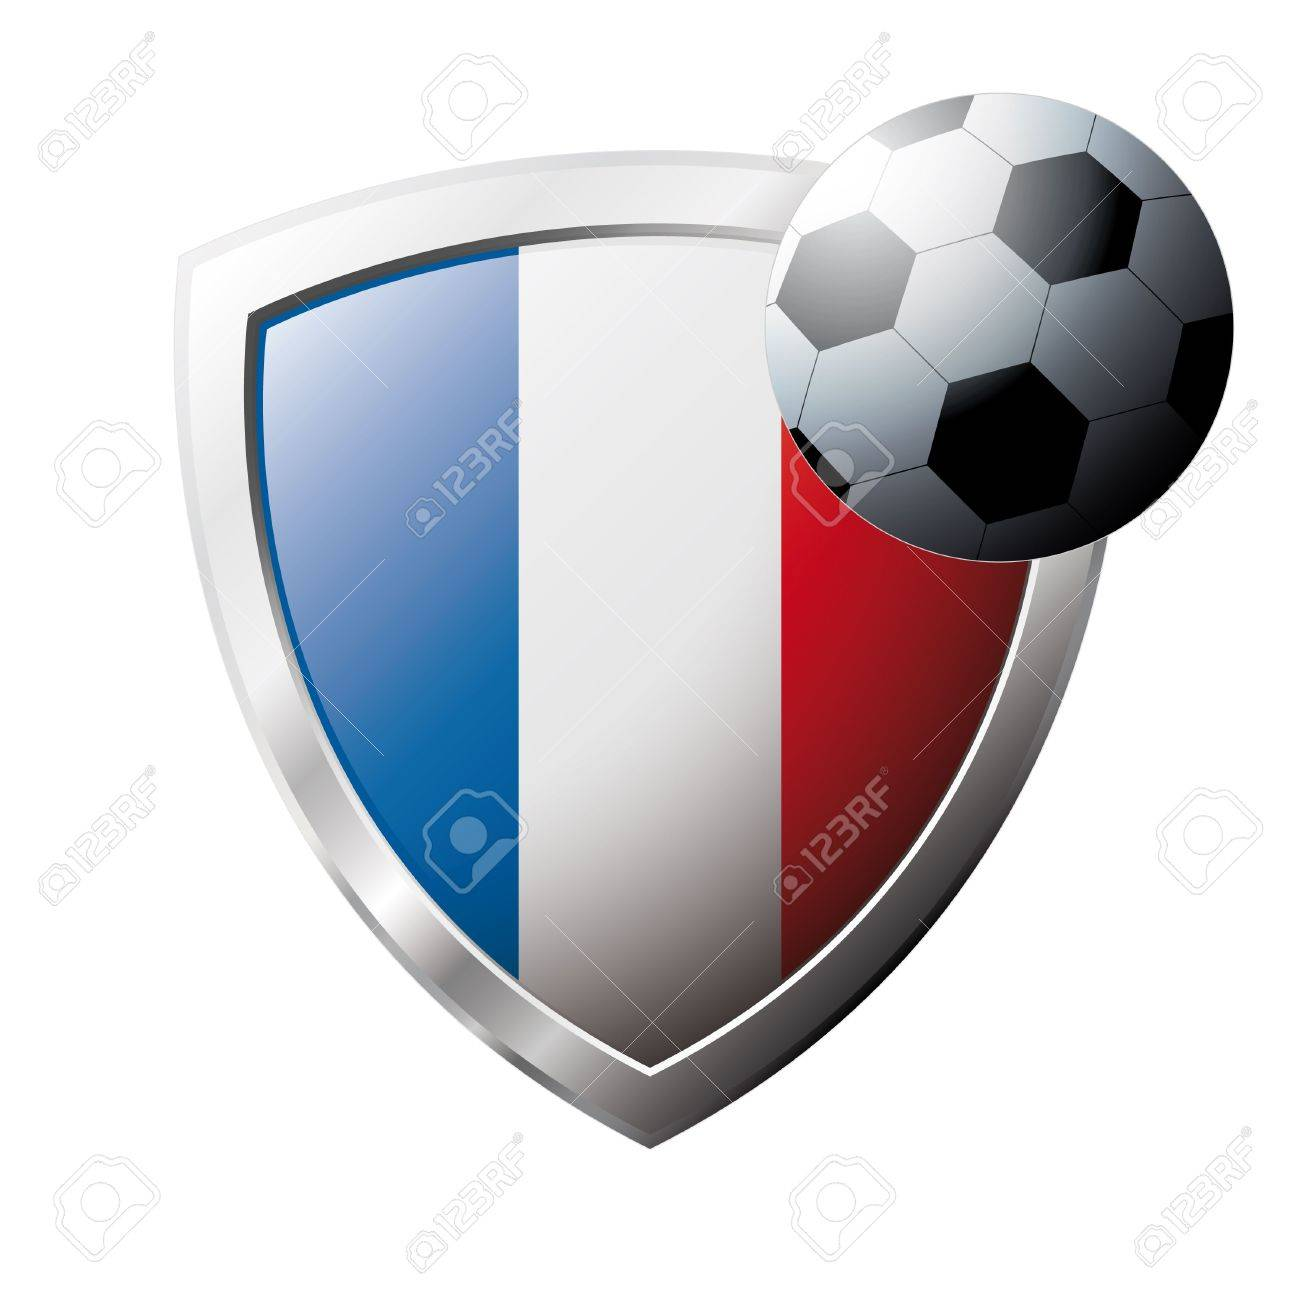 Vector illustration - abstract soccer theme - shiny metal shield isolated on white background with flag of France Stock Vector - 6905430